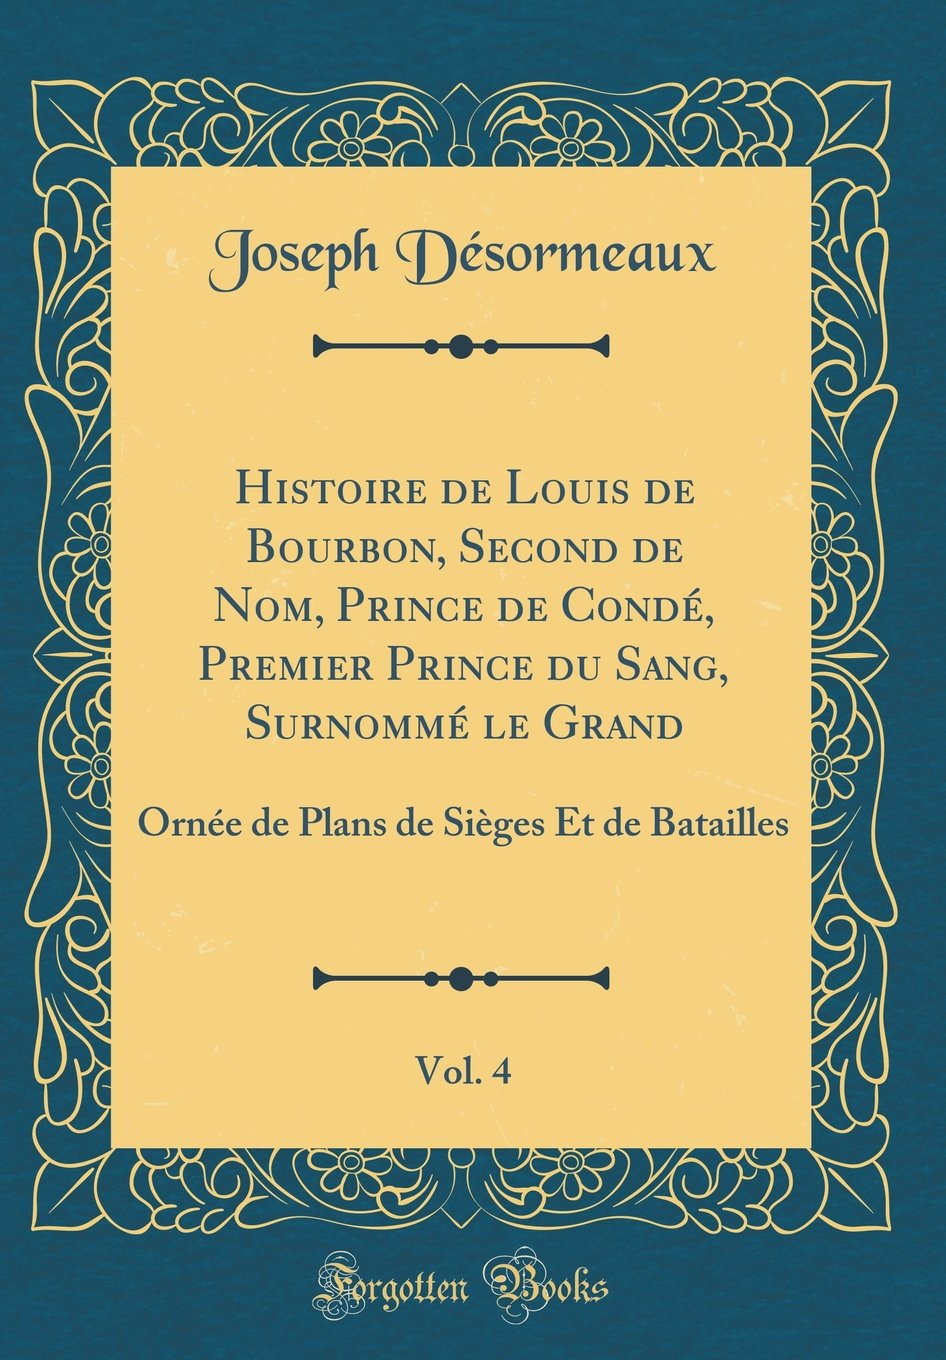 Download Histoire de Louis de Bourbon, Second de Nom, Prince de Condé, Premier Prince Du Sang, Surnommé Le Grand, Vol. 4: Ornée de Plans de Sièges Et de Batailles (Classic Reprint) (French Edition) ebook